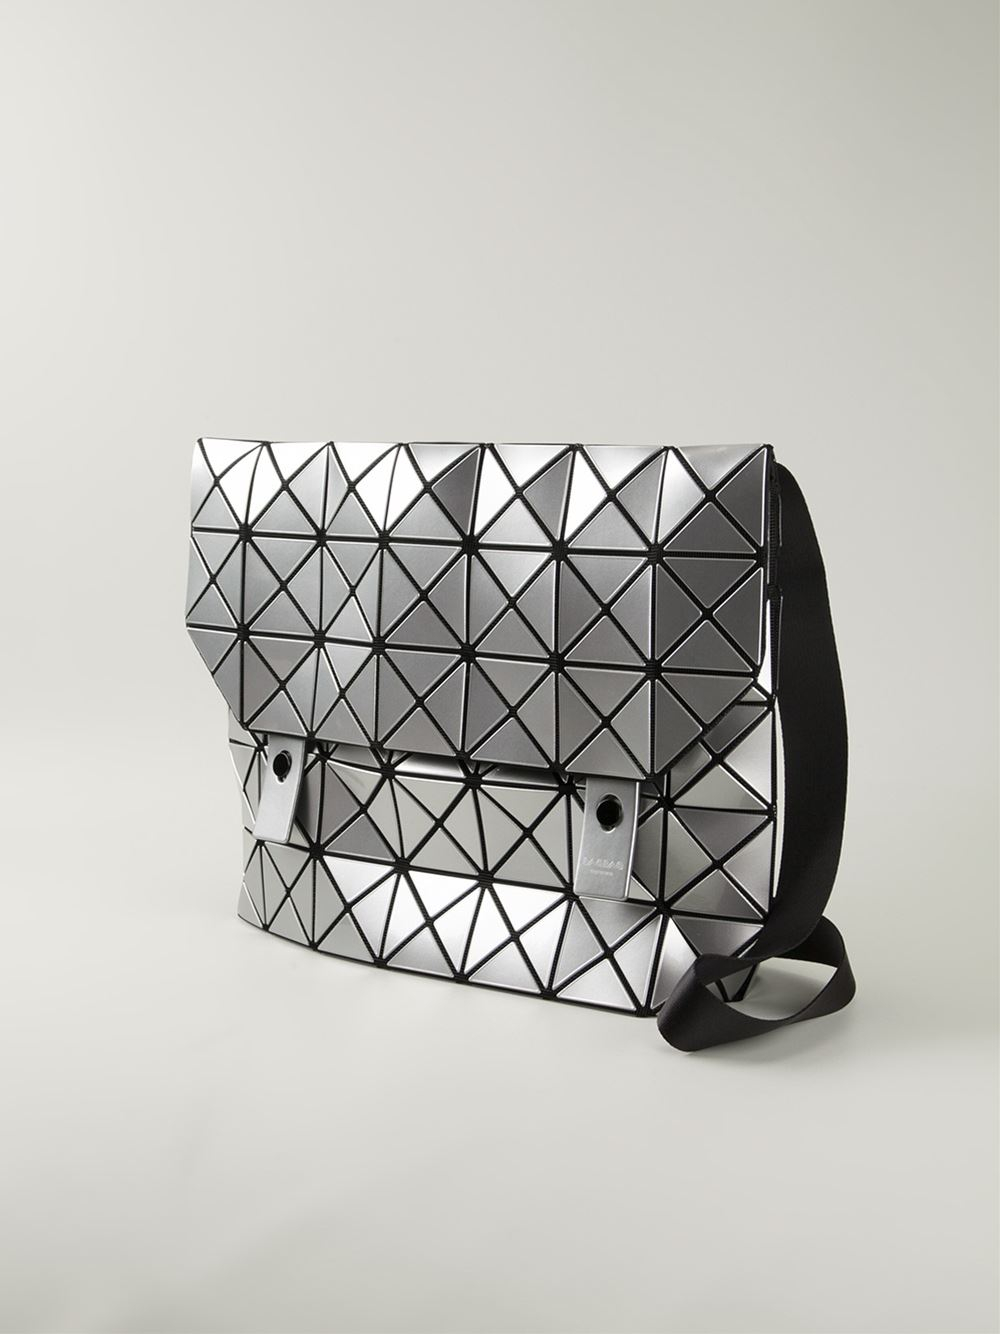 8a555760b0c Bao Bao Issey Miyake Rock Basic Shoulder Bag in Gray - Lyst